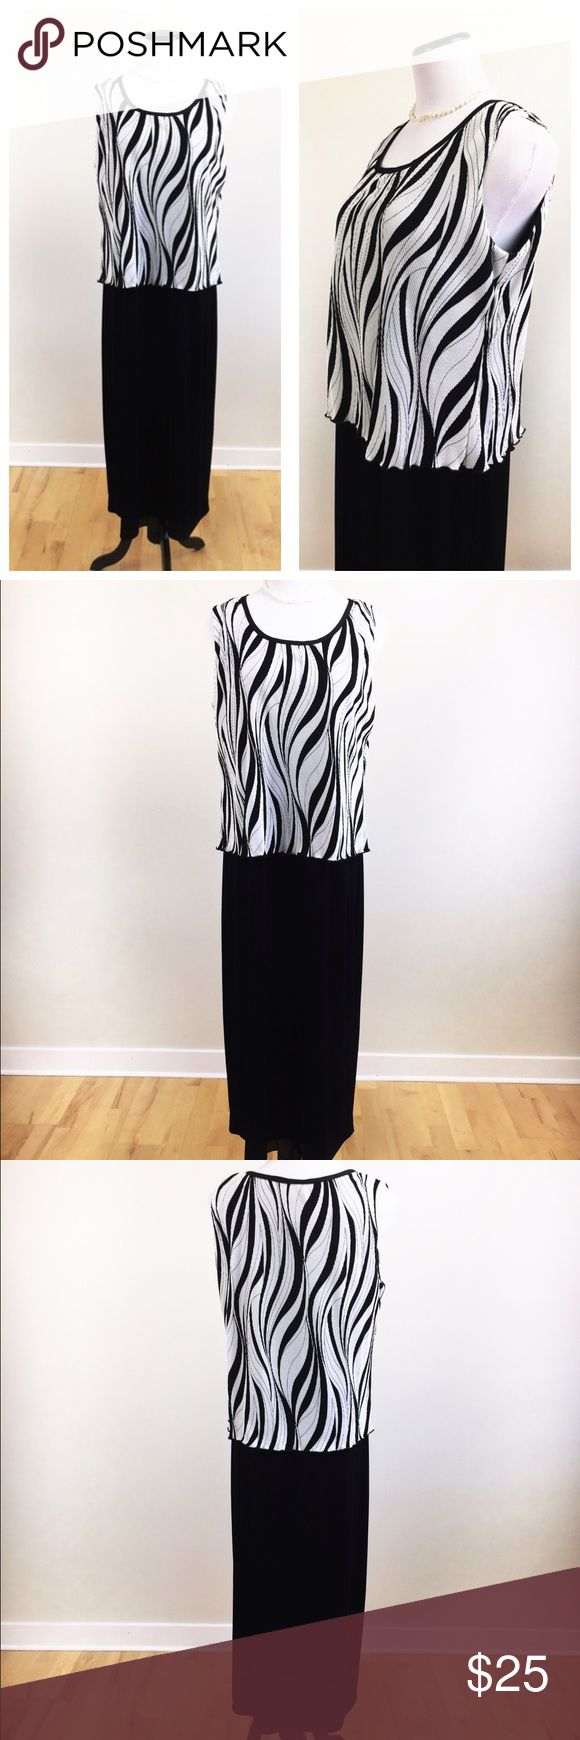 R & M RICHARDS BLACK AND WHITE FORMAL DRESS SZ16 Beautiful and elegant R & M Richards black and white maxi formal dress in size 16. Flows and gorgeous, ideal for a special event or as a wedding guest dress. This is a pre loved item, with the look and feel of pre owned, has no stains or holes and still preserves its beauty. Love it? 🌺 make an offer! Questions? Ask me! ❤️🌹 R & M Richards Dresses